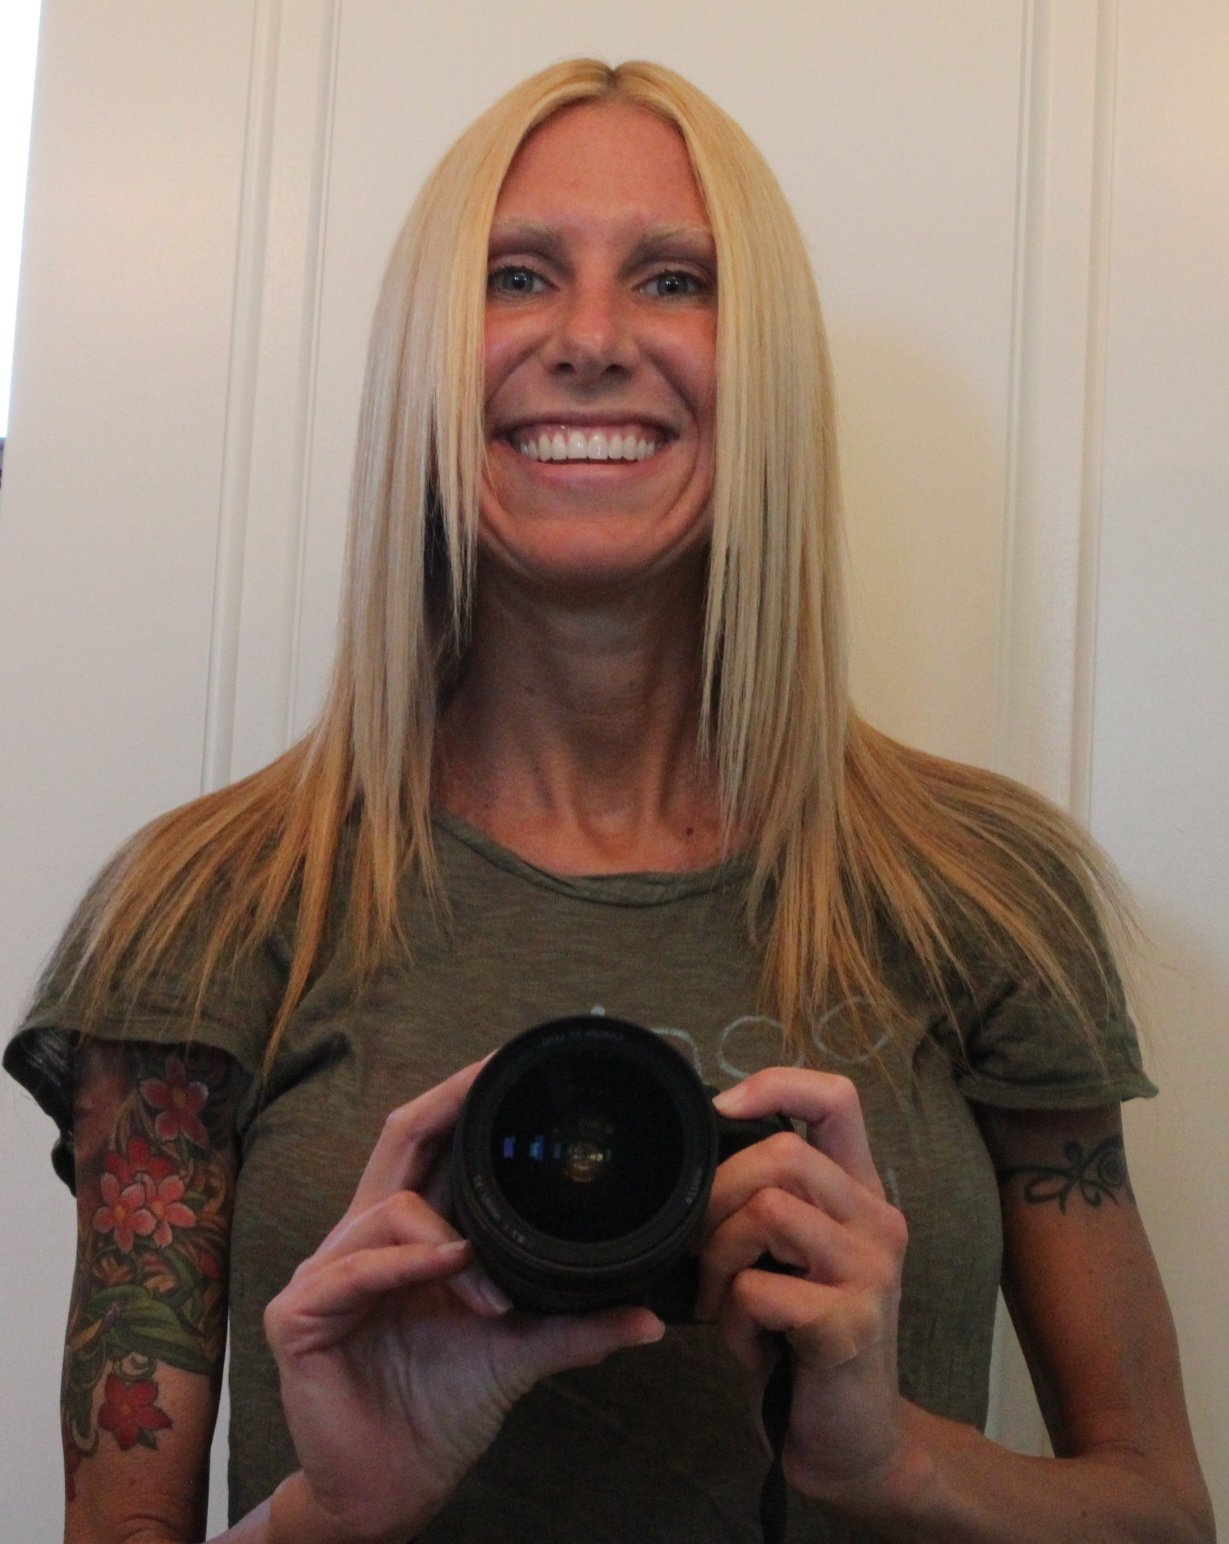 Woman with hair down holding camera